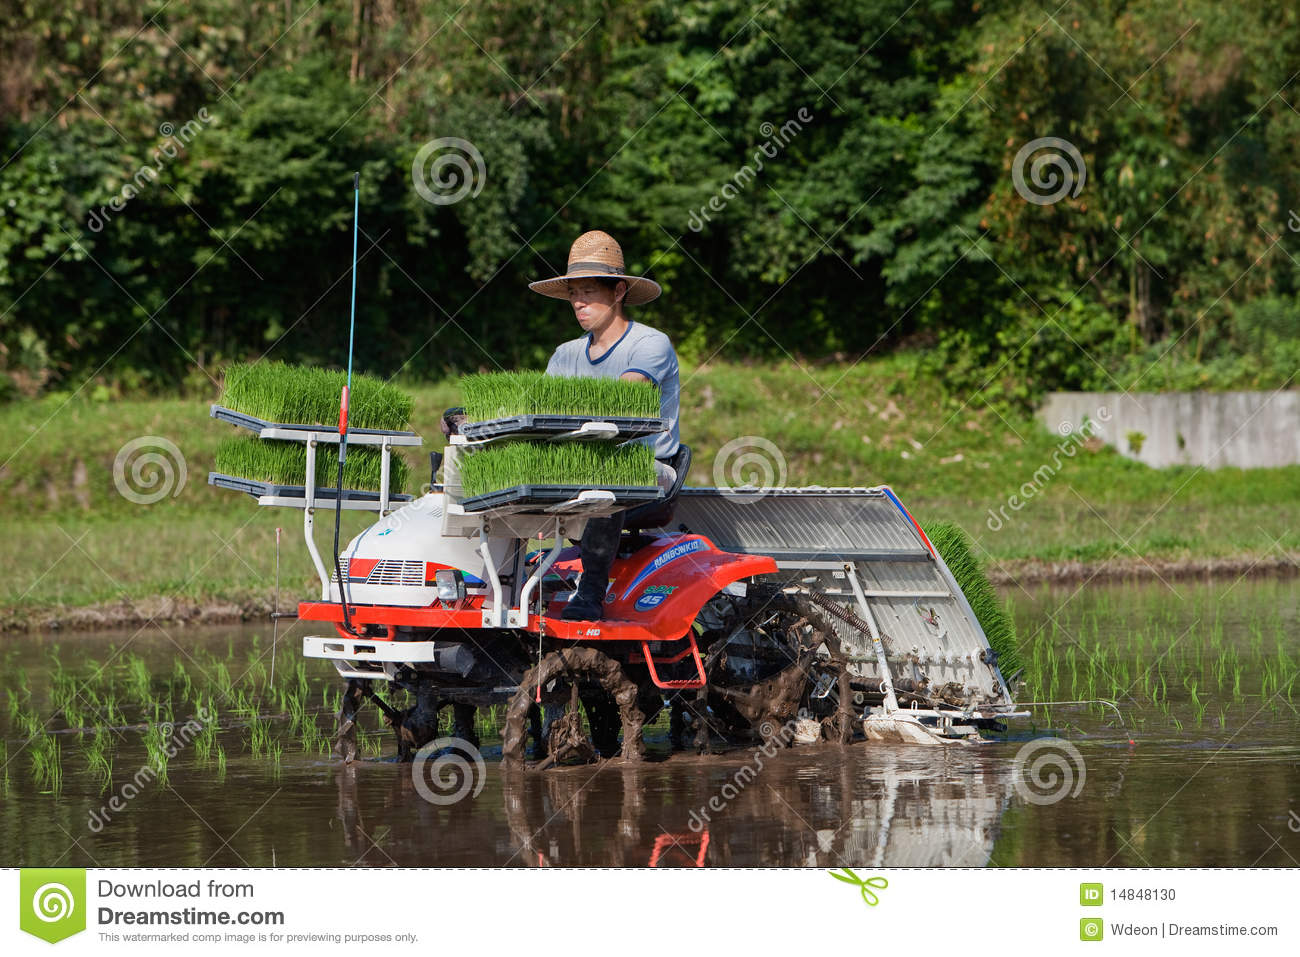 Japanese farmer planting a rice field by tractor